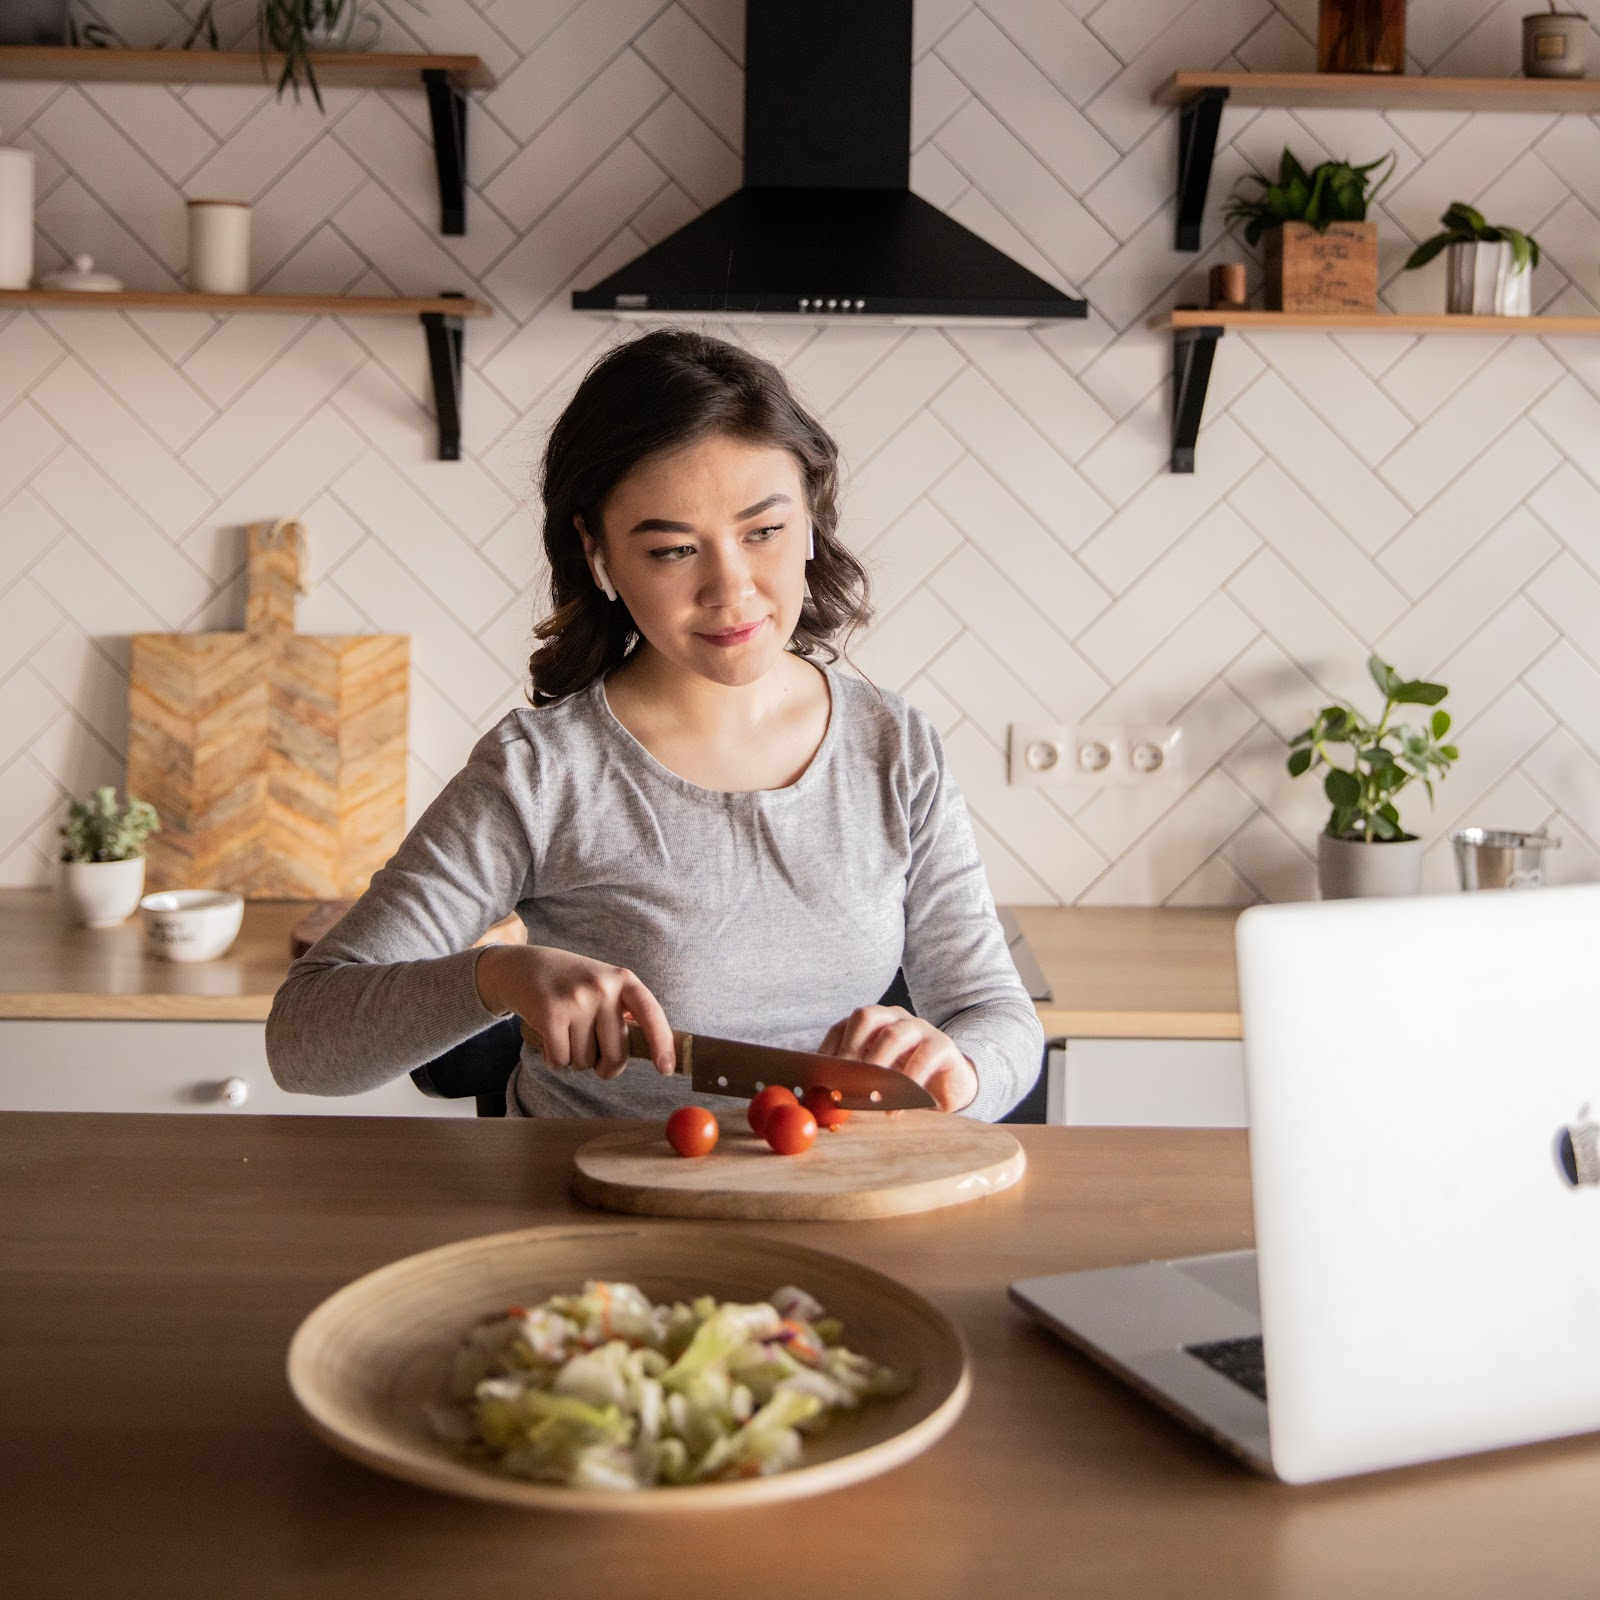 recipes from laptop